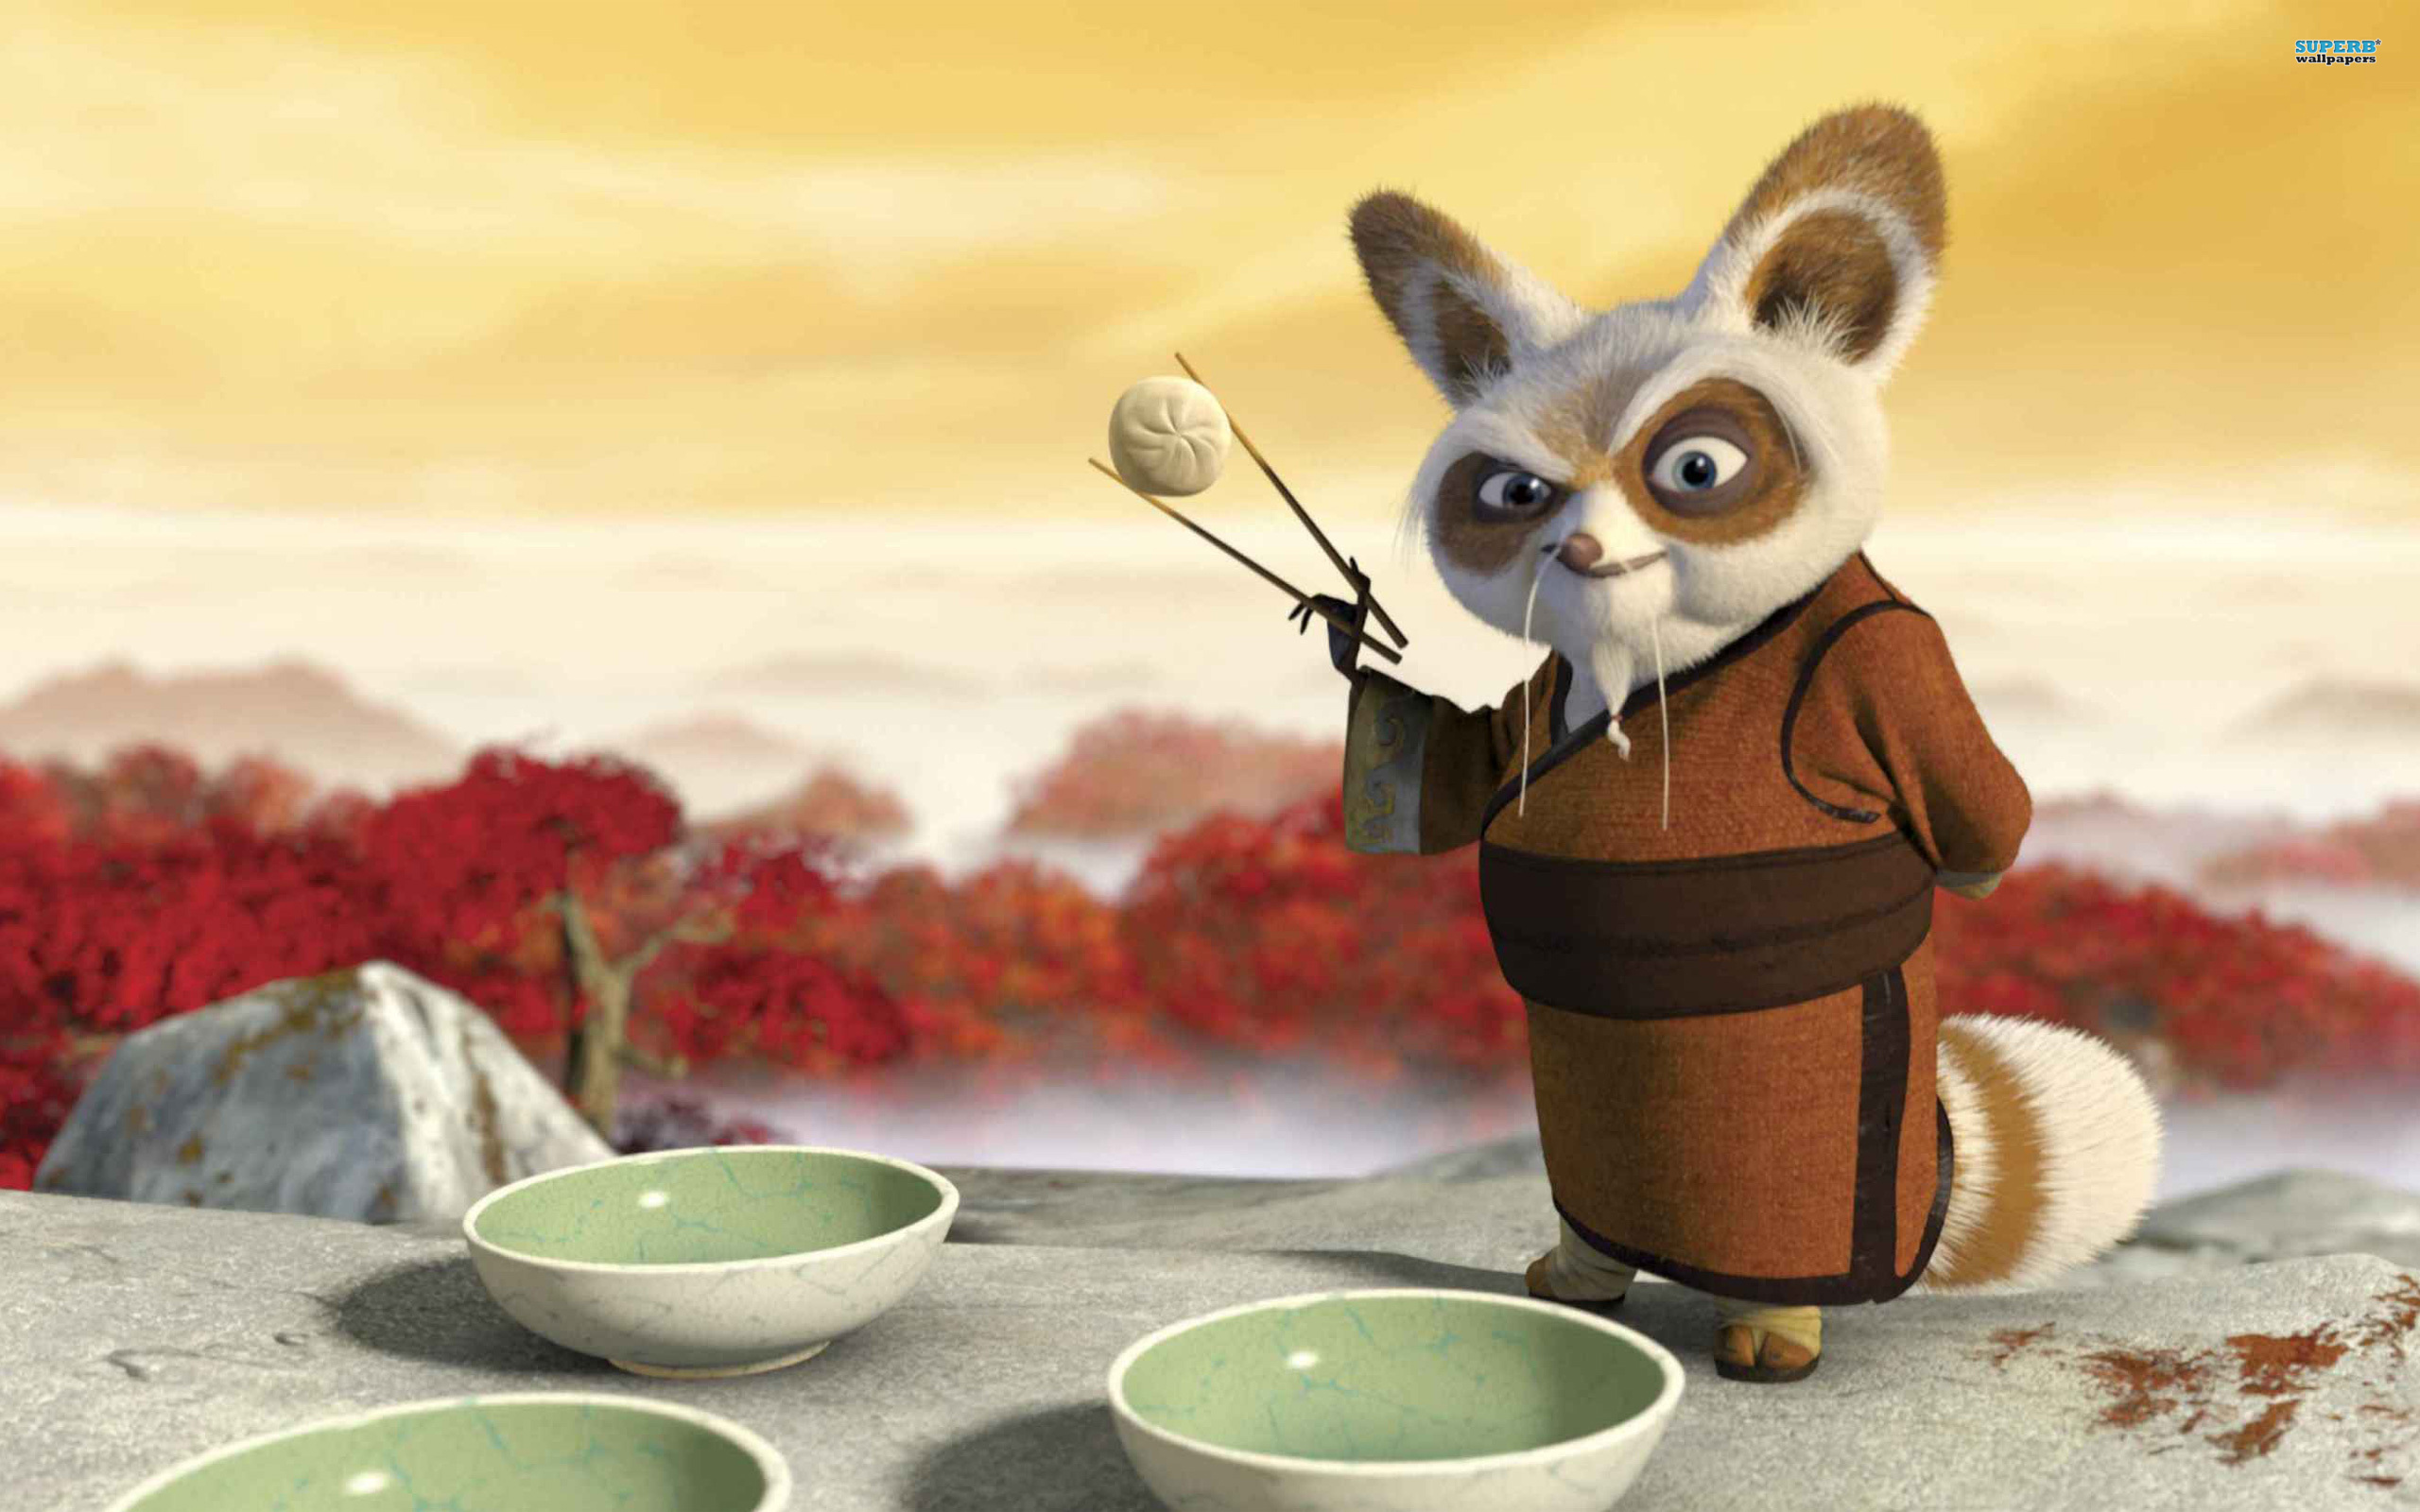 Kung Fu Panda Movie Best Quality Wallpapers All Hd Wallpapers